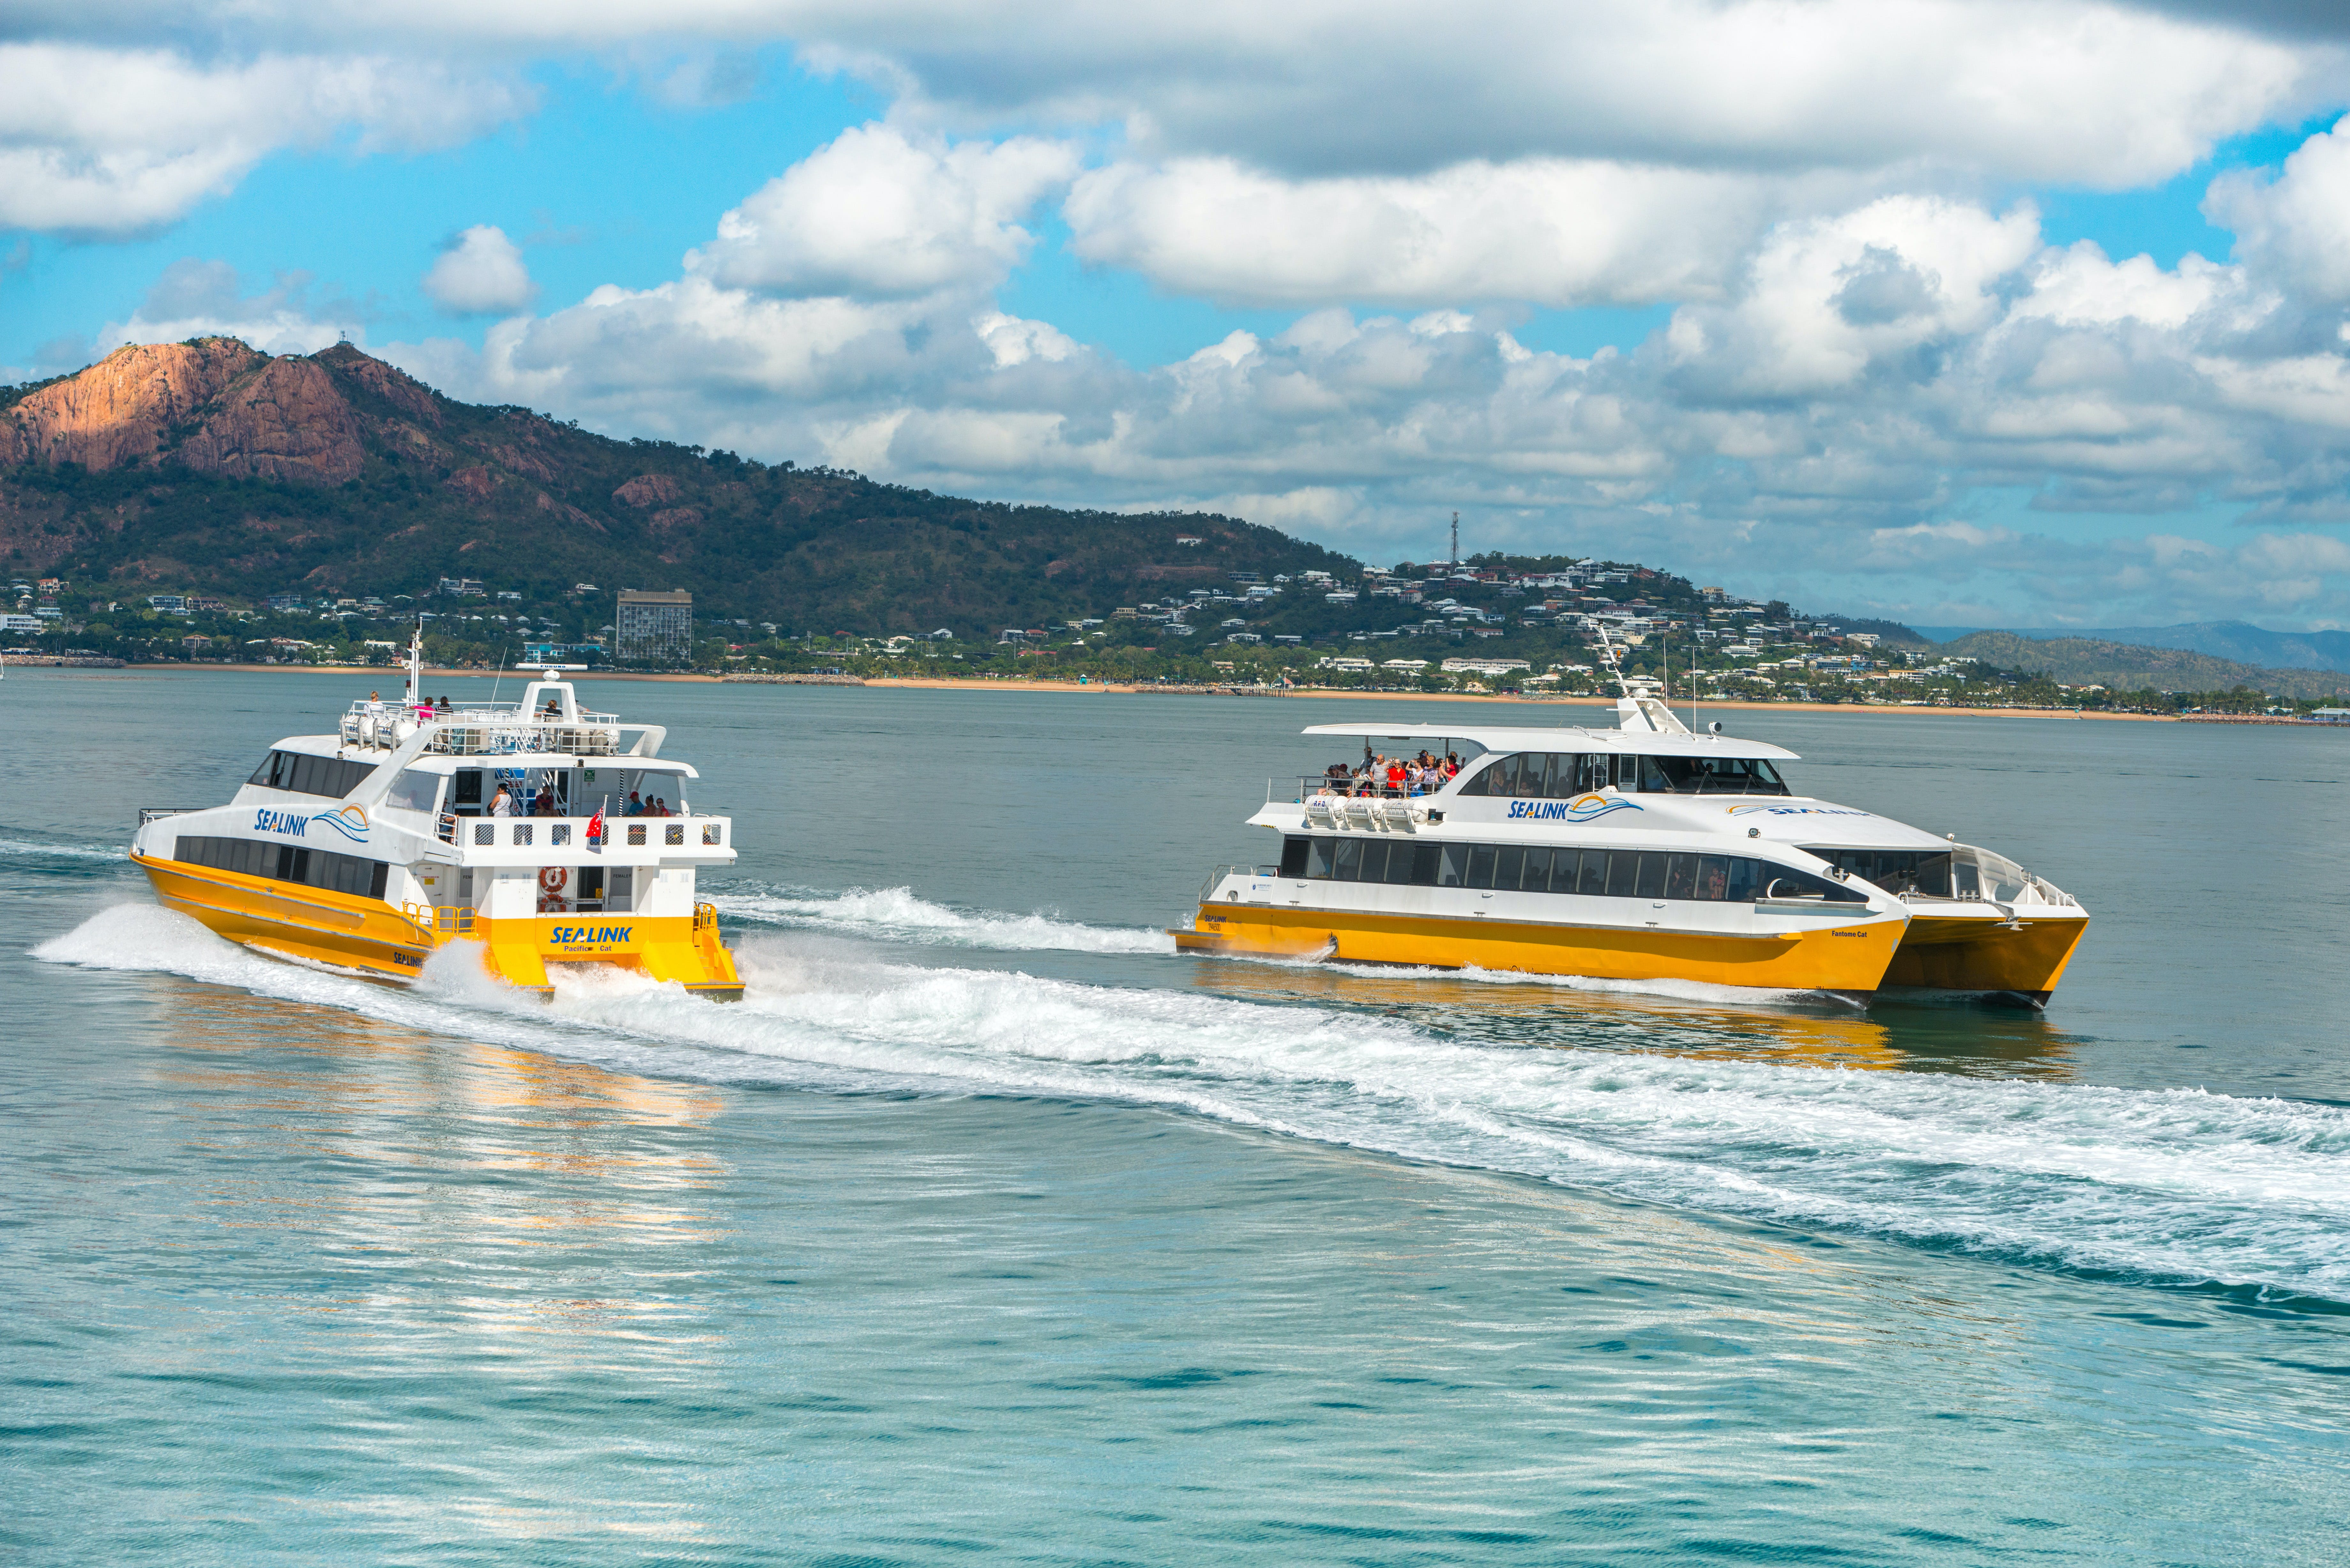 Apex Camps Magnetic Island Group Accommodation Activities and Events - Townsville Tourism